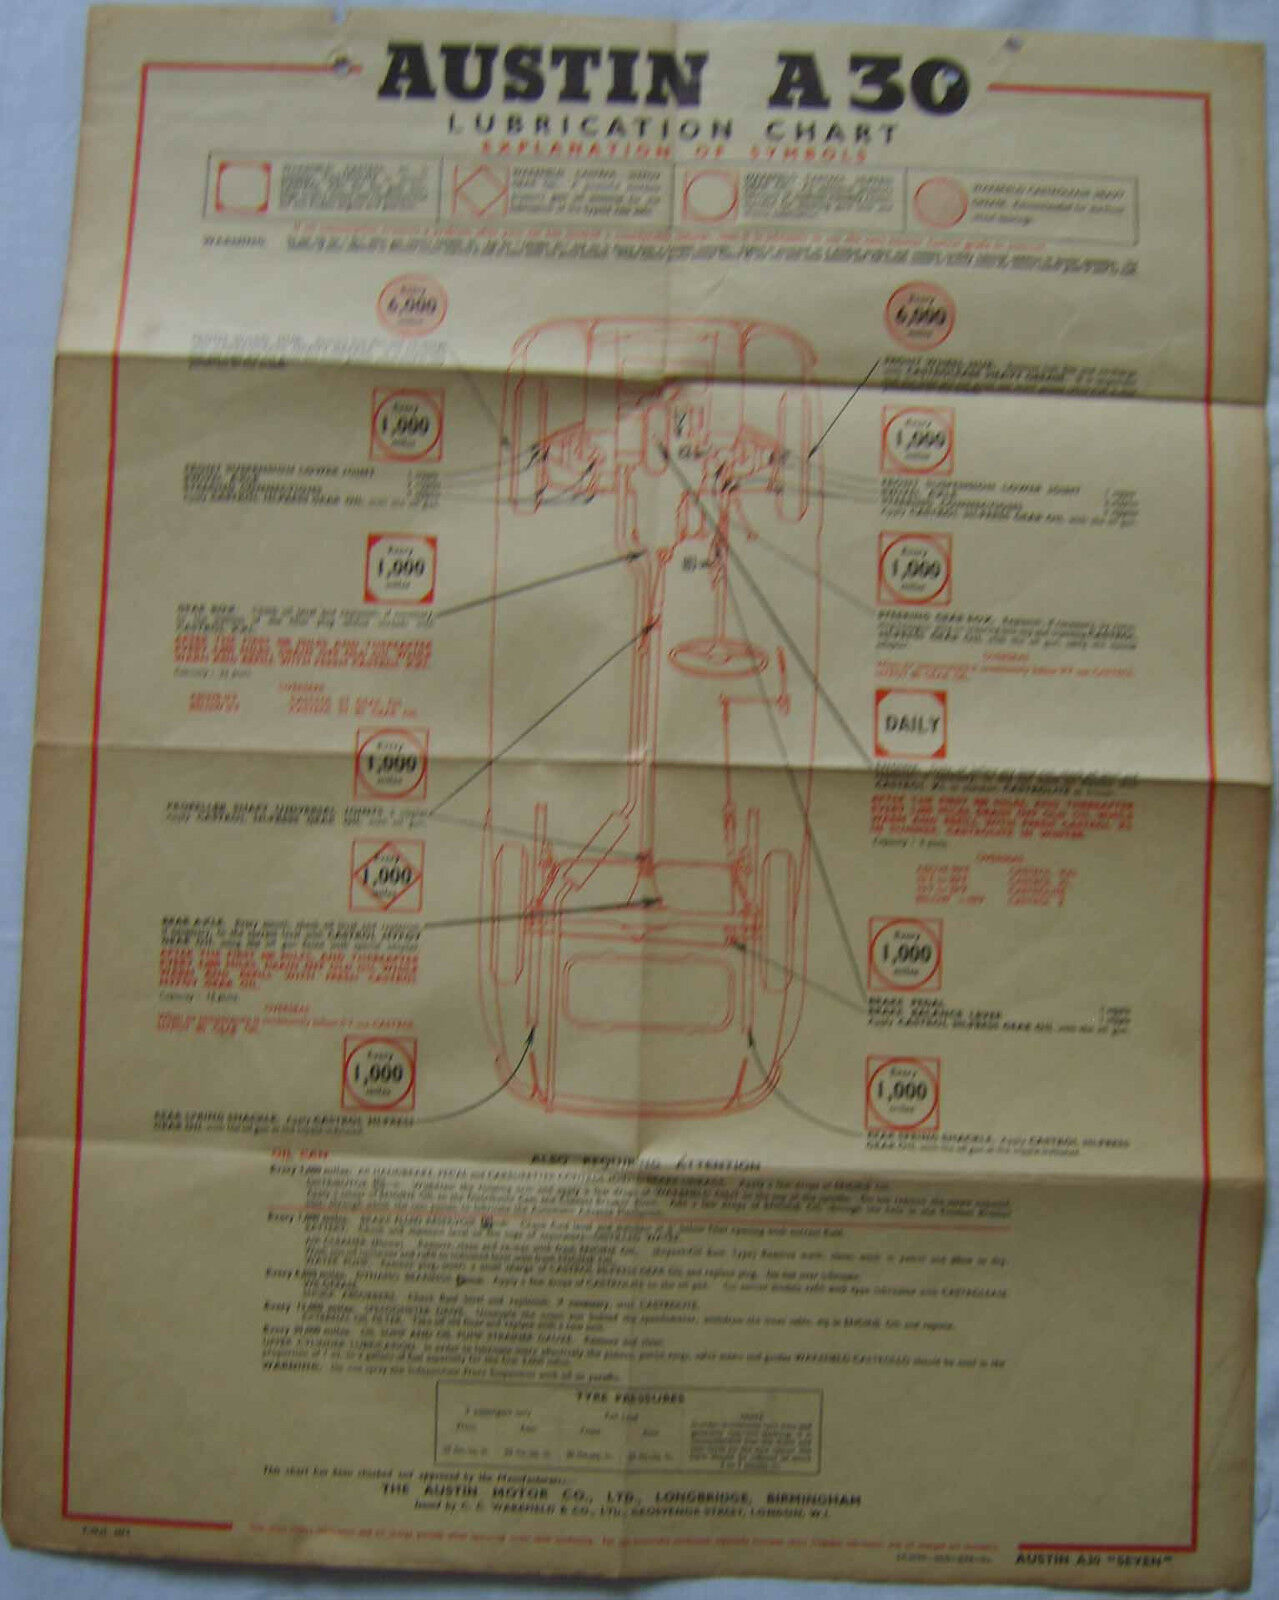 Austin A 30 Original Castrol Lubrication Chart 1952 1954 Pub No Lc 2002 Mini Cooper Further Cortina Mk1 Wiring Diagram As Well 1 Of 1only Available See More